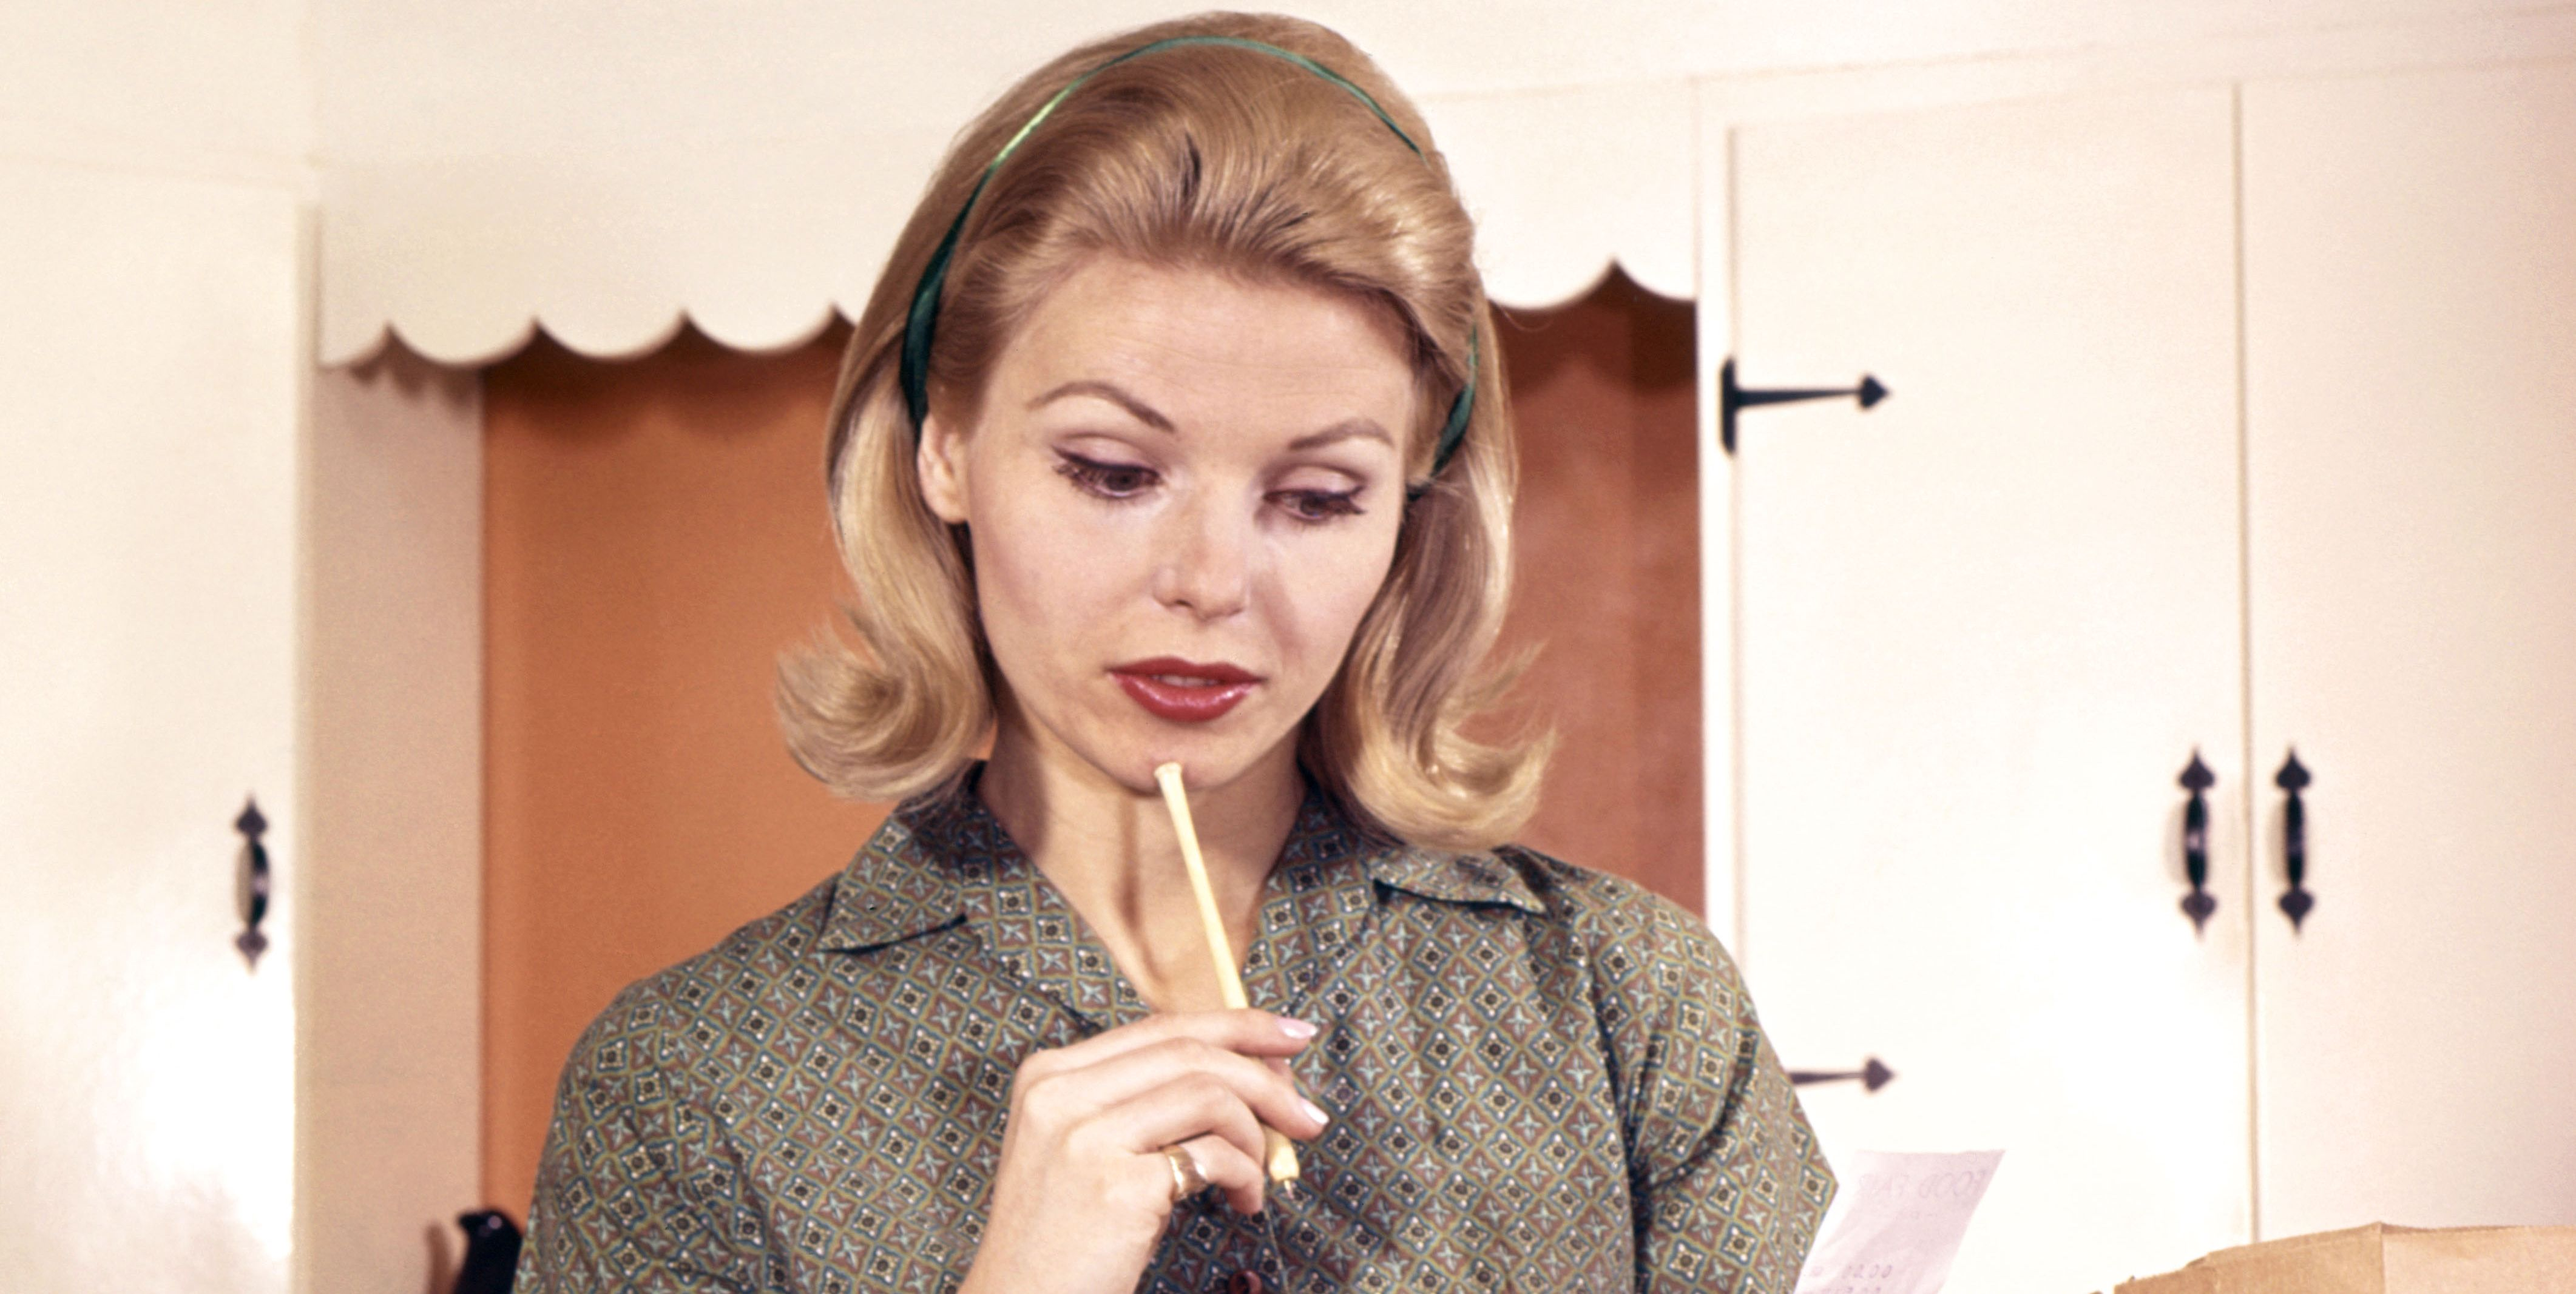 Blonde Woman Housewife In Kitchen Compare Cash Reg